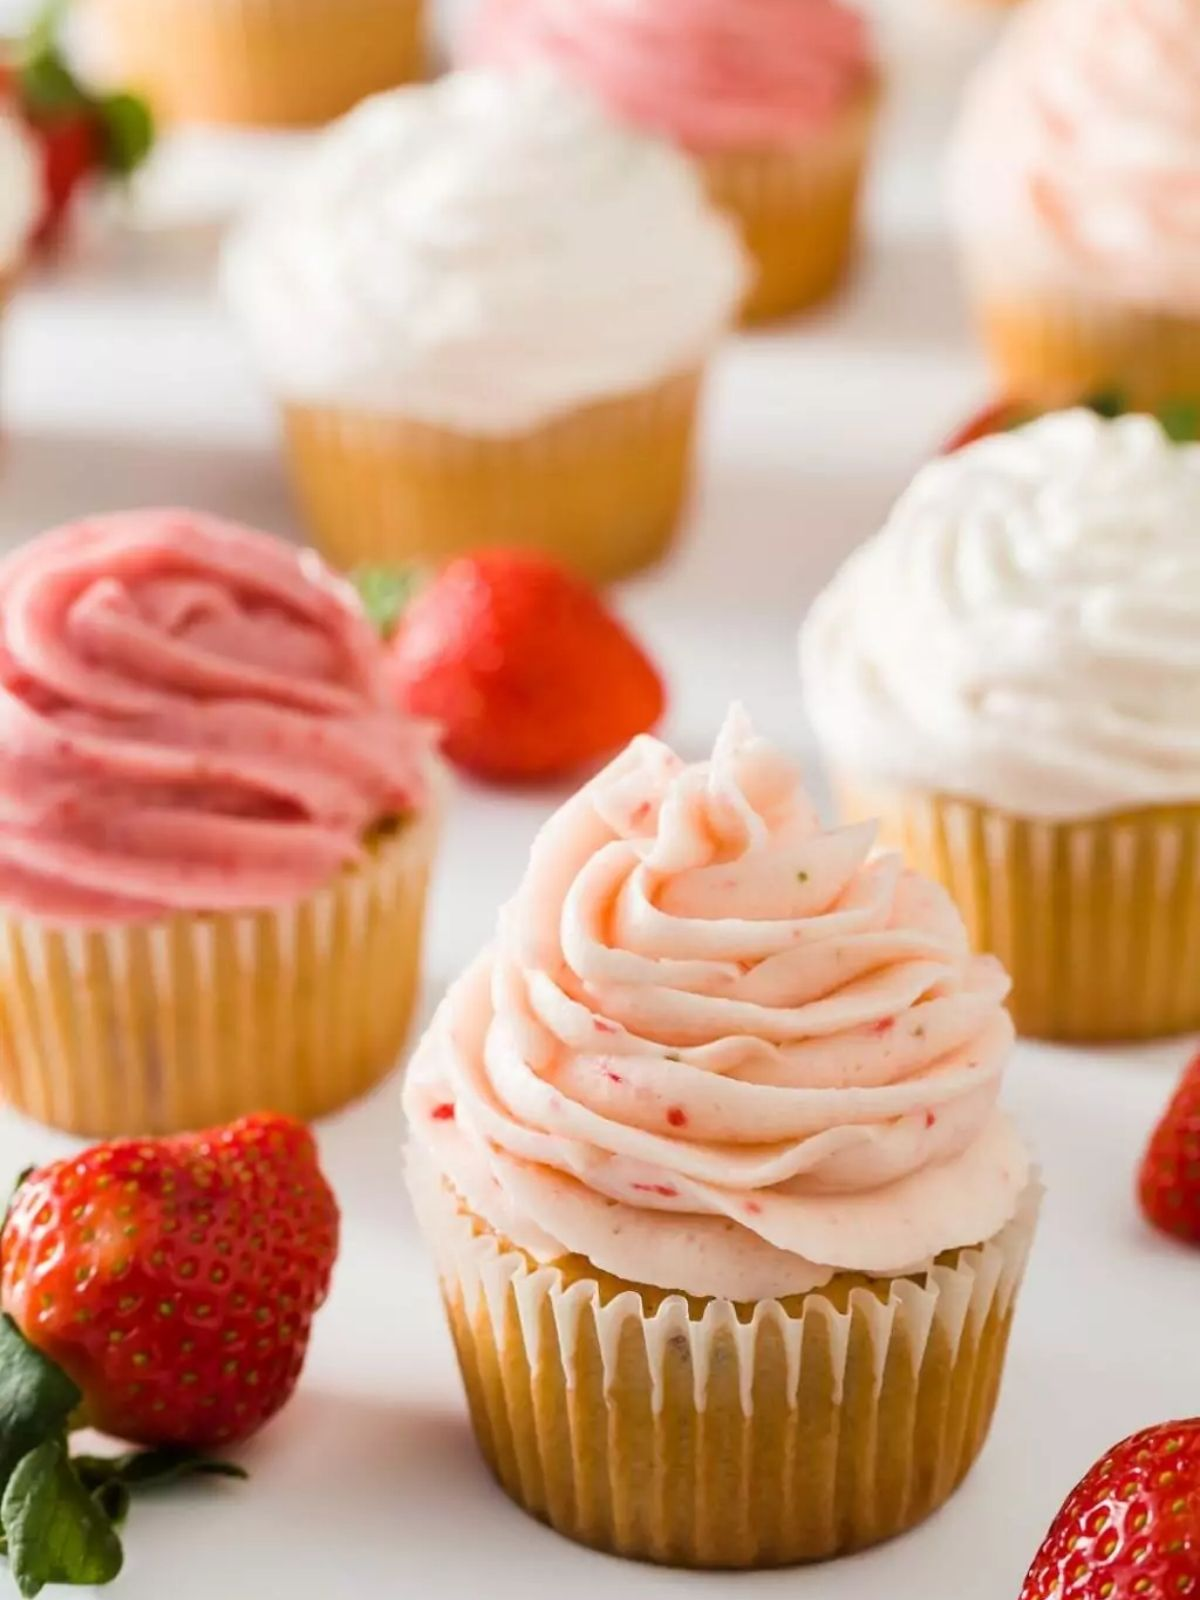 Strawberry cupcakes with strawberry buttercream frosting and fresh strawberries around them.